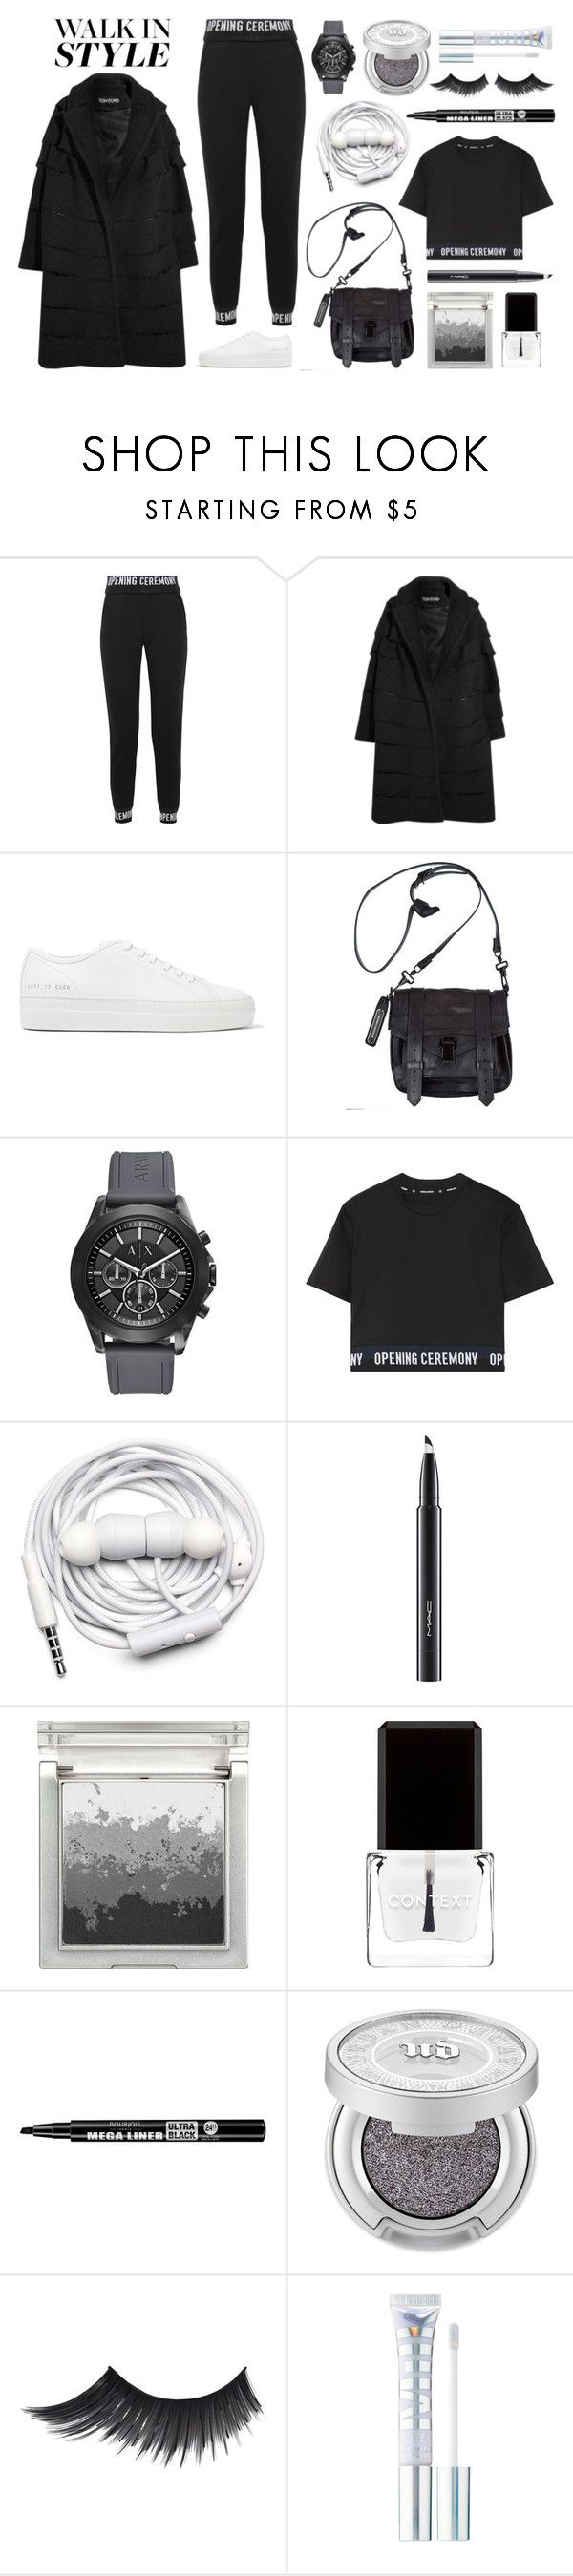 """Walk in Style"" by cherieaustin ❤ liked on Polyvore featuring Opening Ceremony, Tom Ford, Common Projects, Proenza Schouler, Armani Exchange, Urbanears, MAC Cosmetics, Sue Devitt, Context and Bourjois"